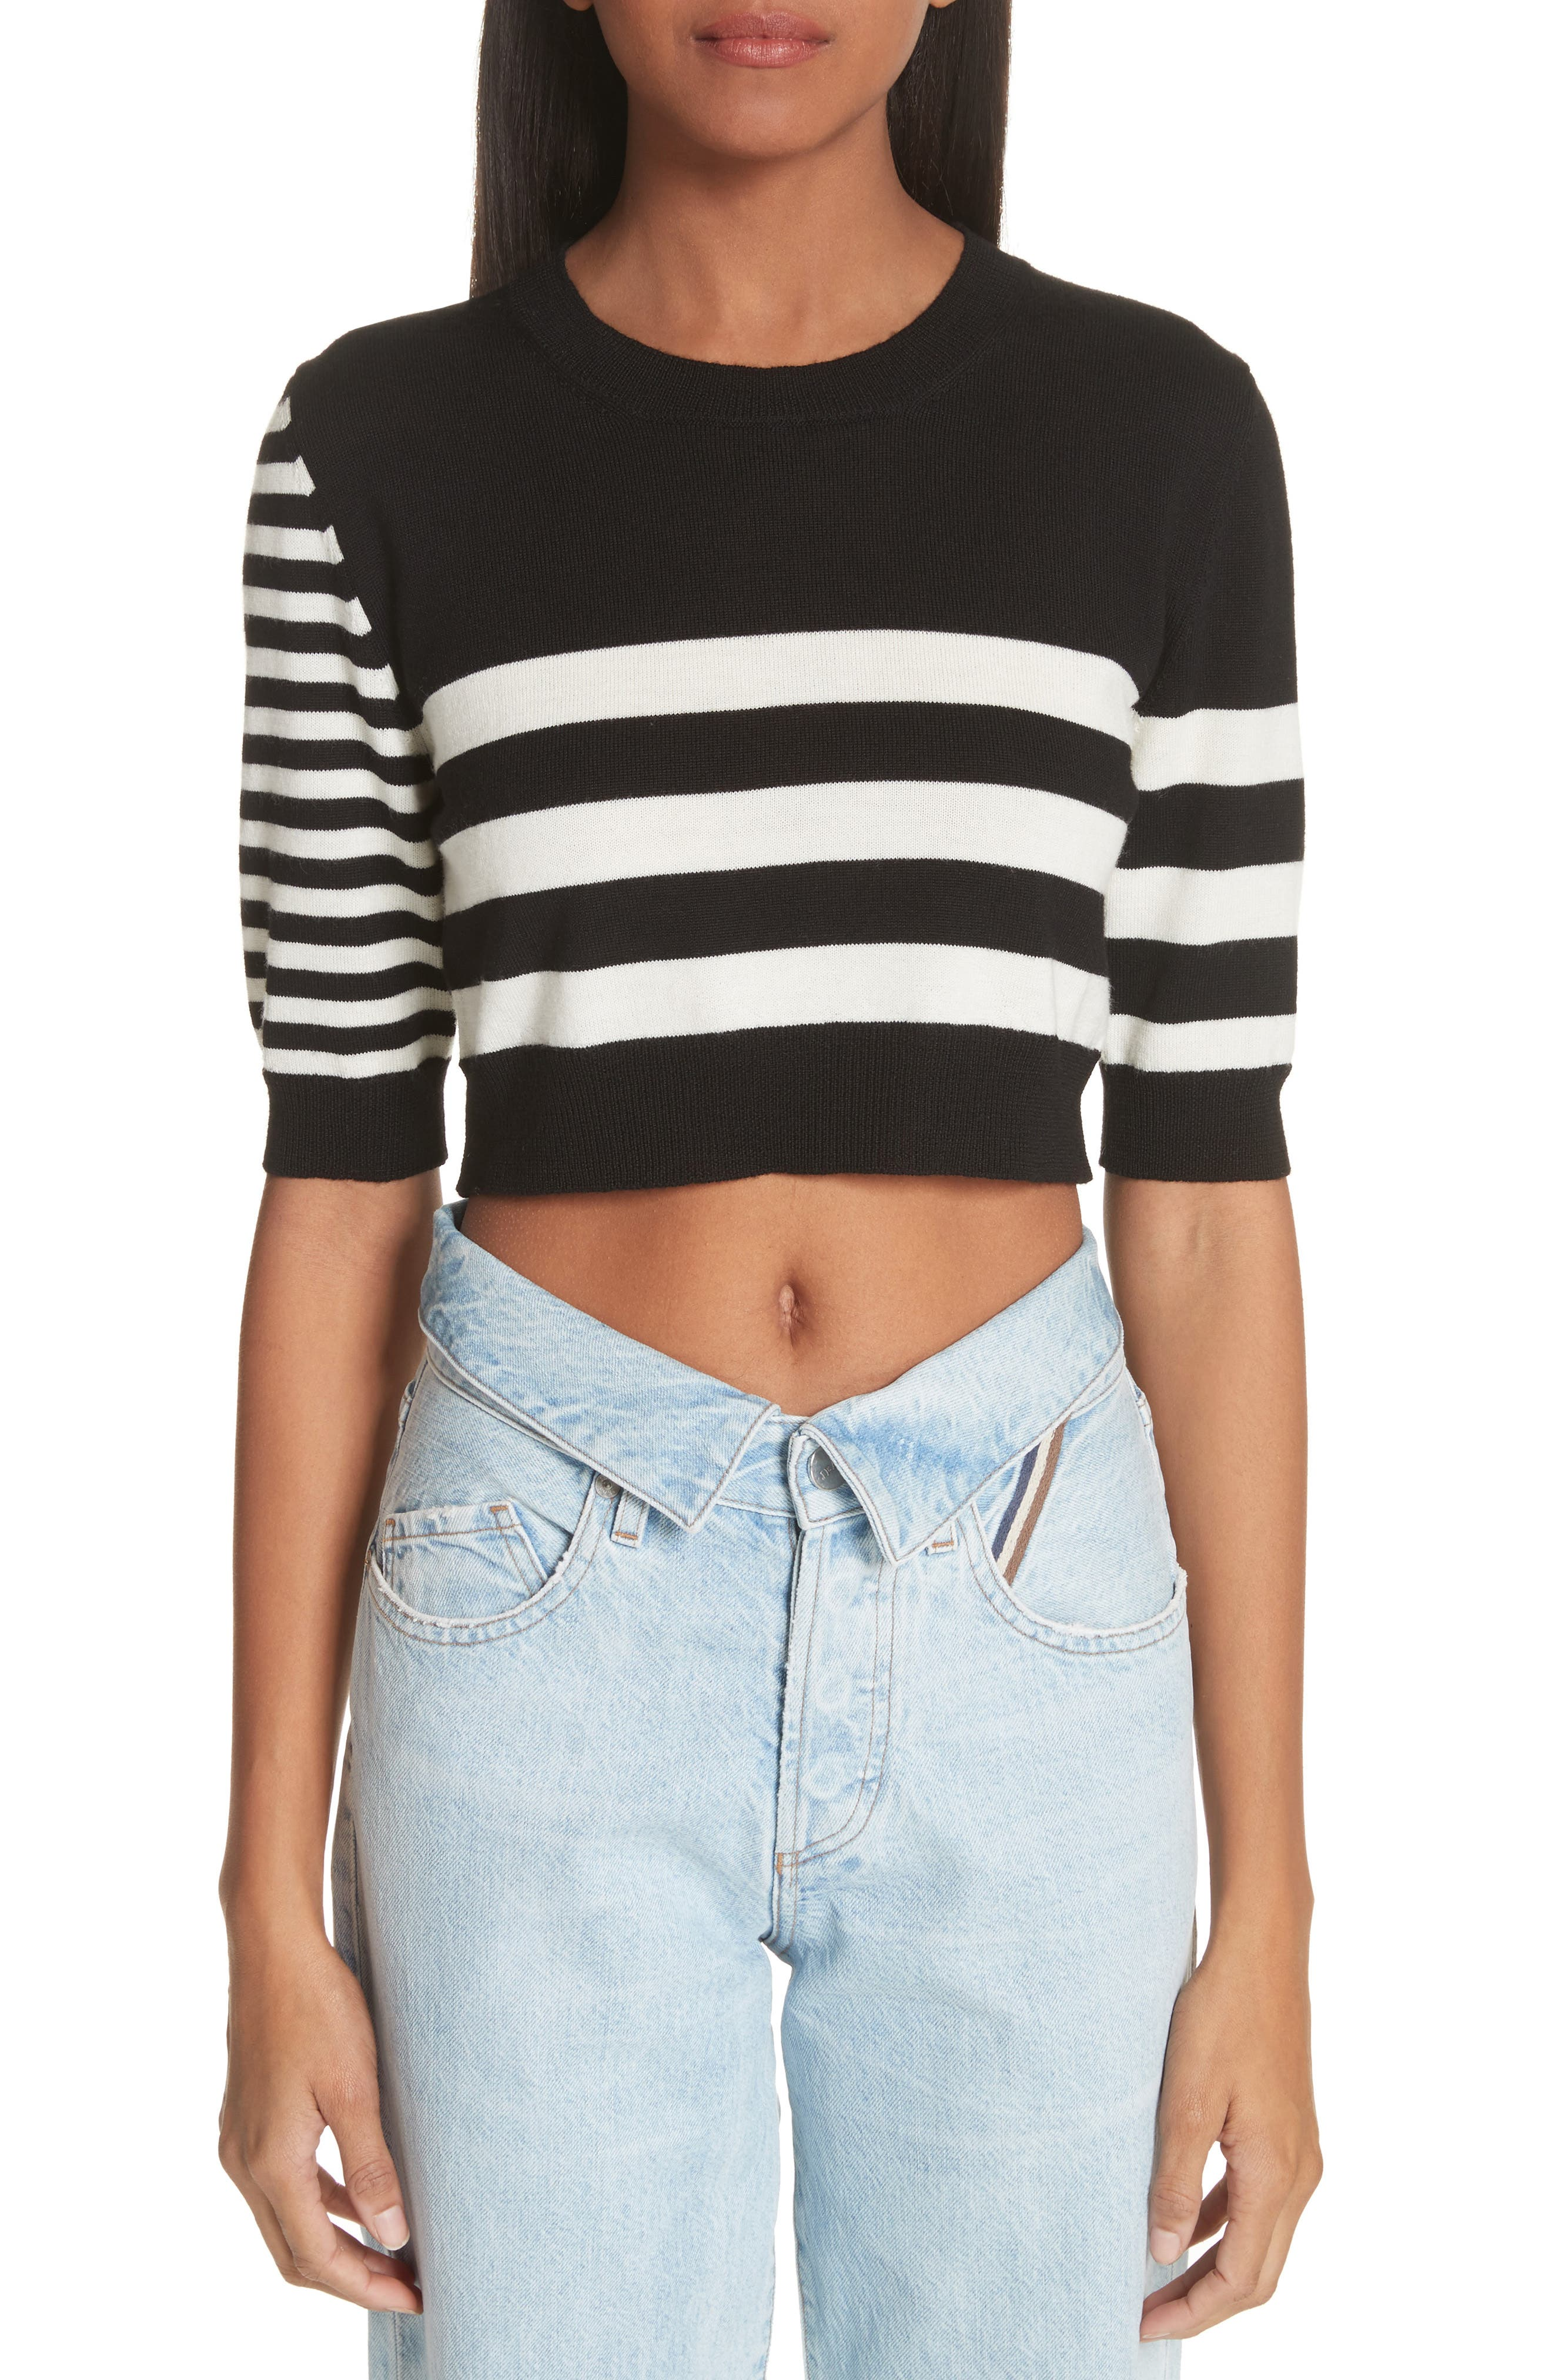 Molly Goddard Love Stripe Crop Wool Sweater